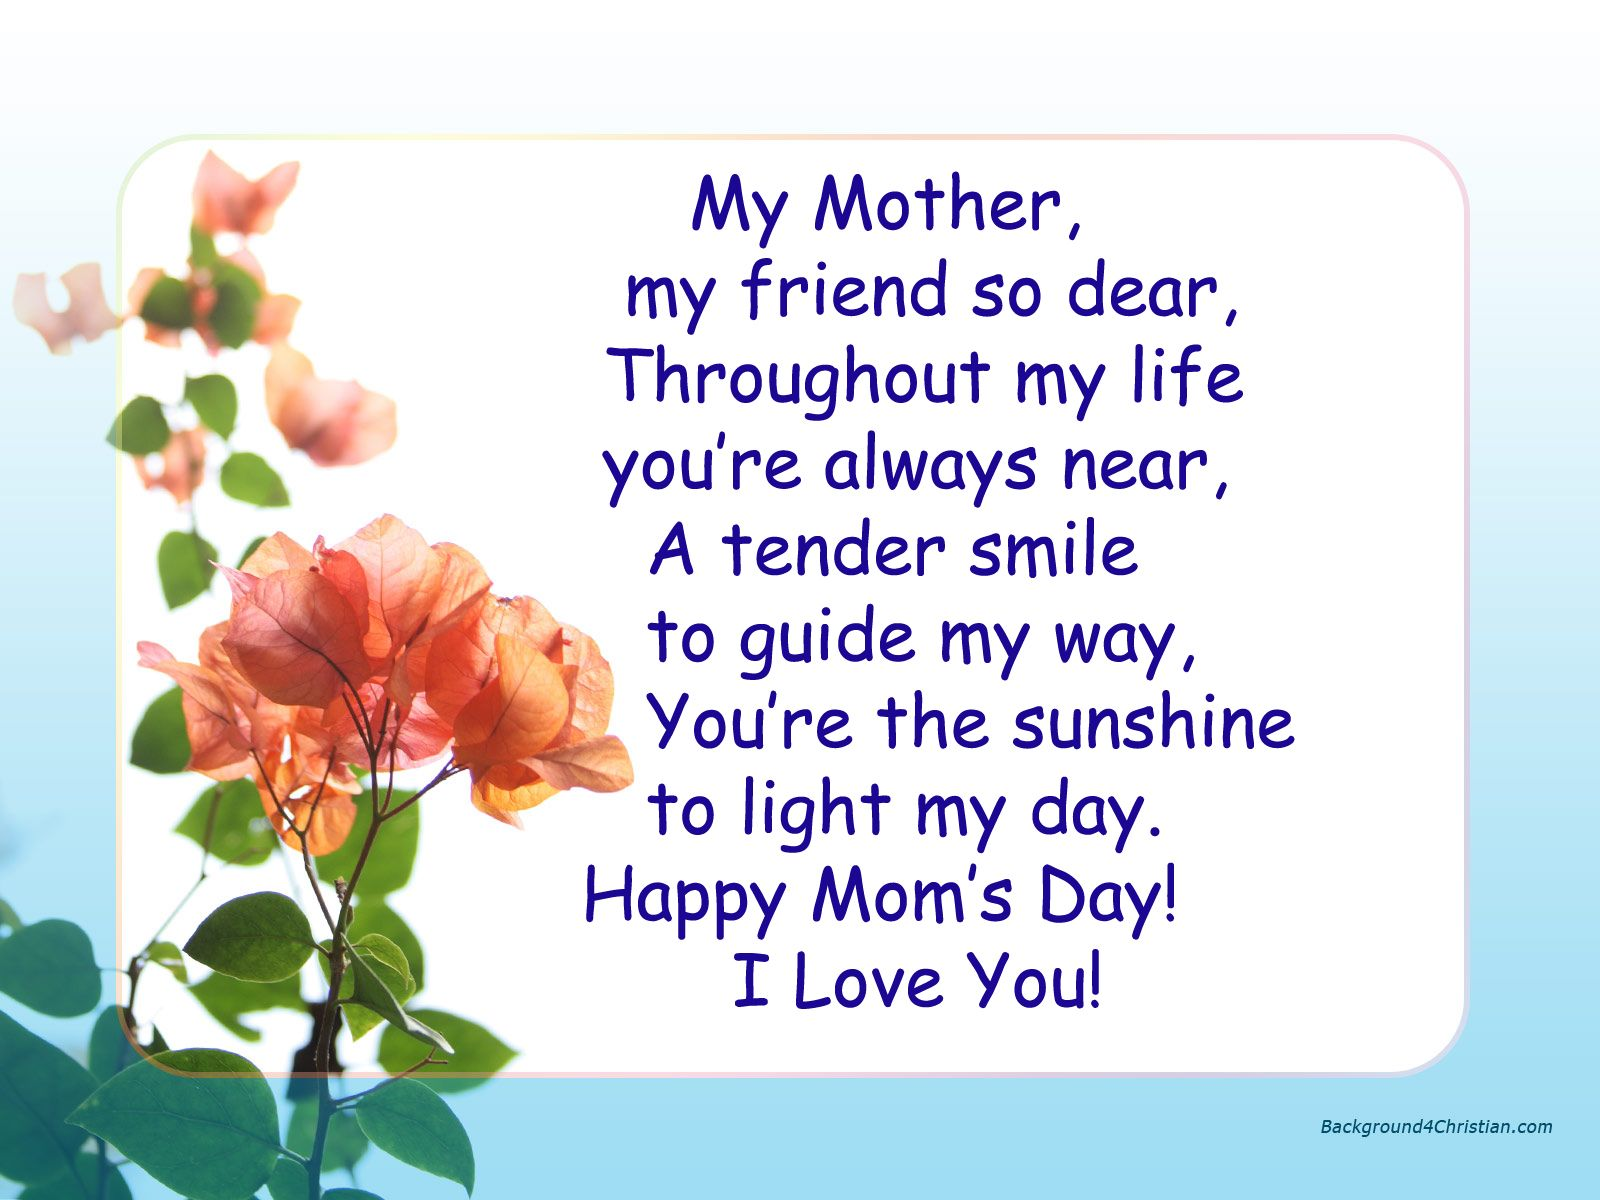 Free mothers day greetingsquotes poems happy mothers poem and day free image mother quotes free mothers day greetingsquotes poems answer kristyandbryce Images